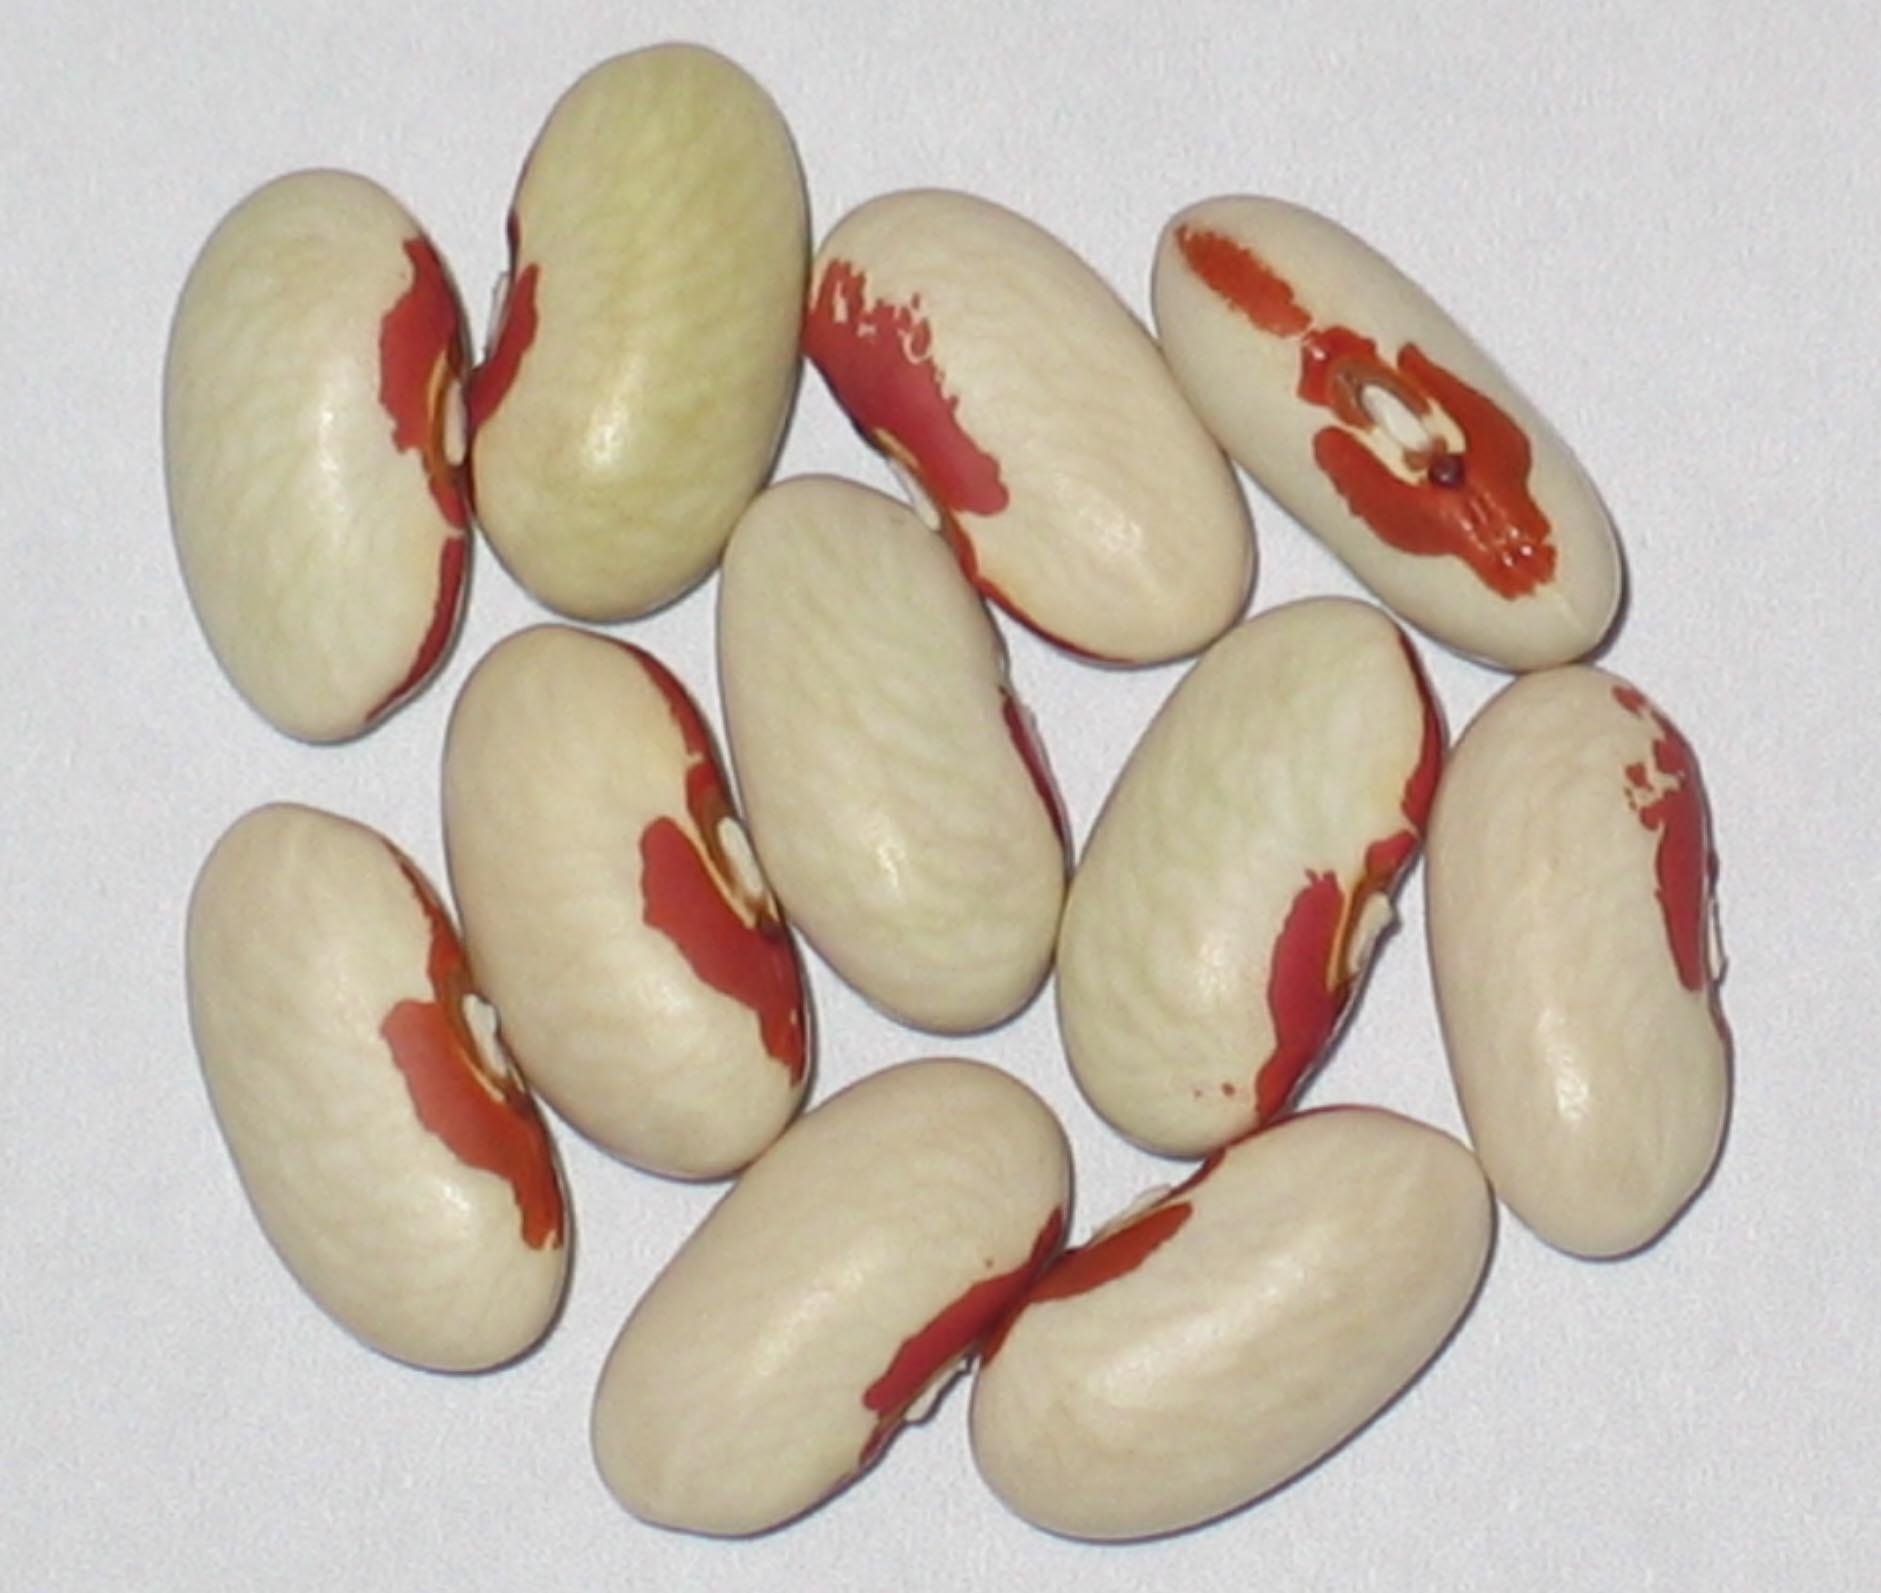 image of Soldier beans